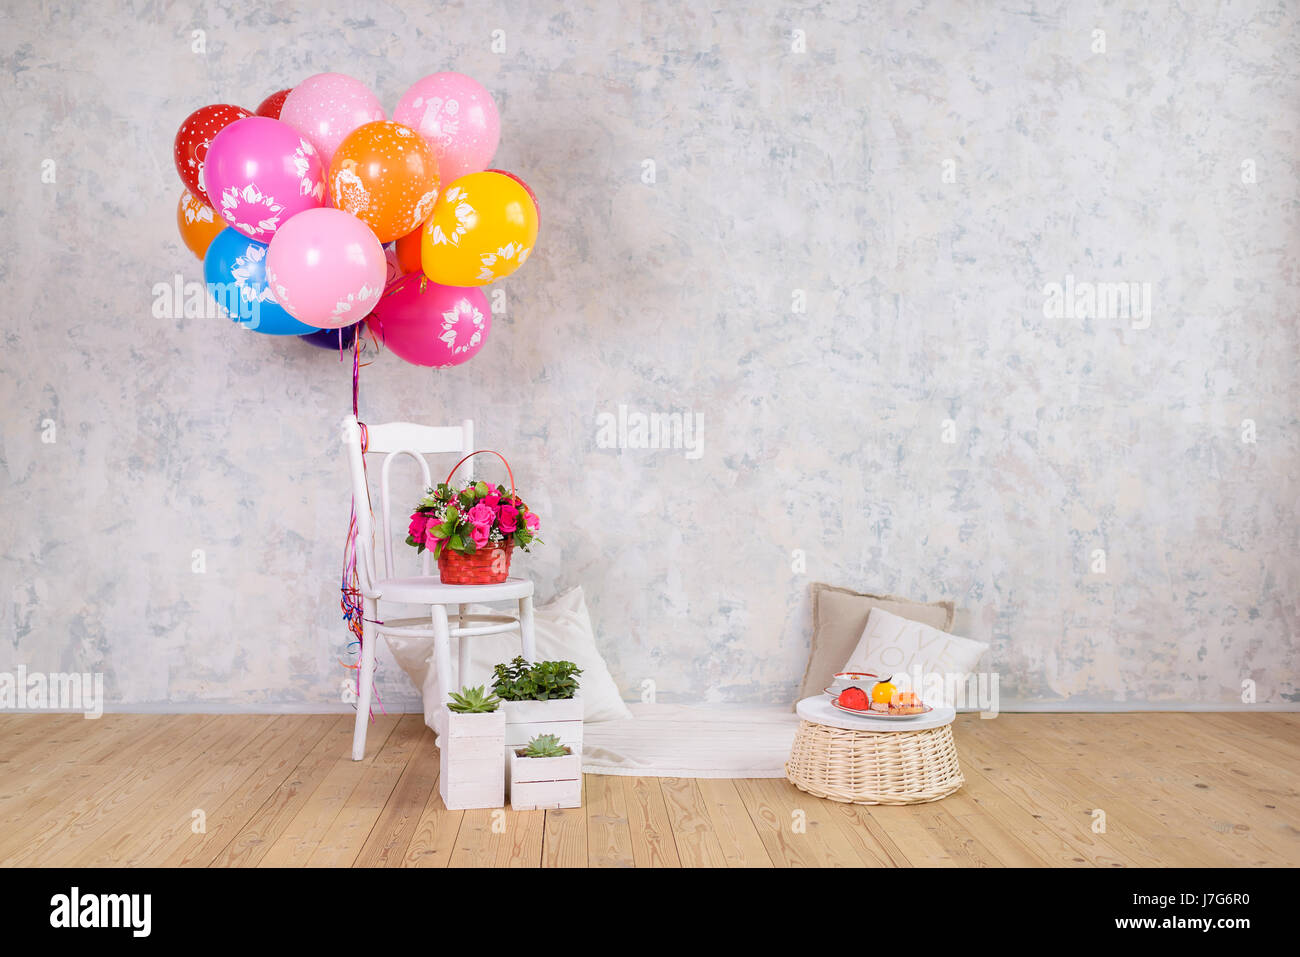 Chair and balloons flowers basket and cake birthday stock photo chair and balloons flowers basket and cake birthday izmirmasajfo